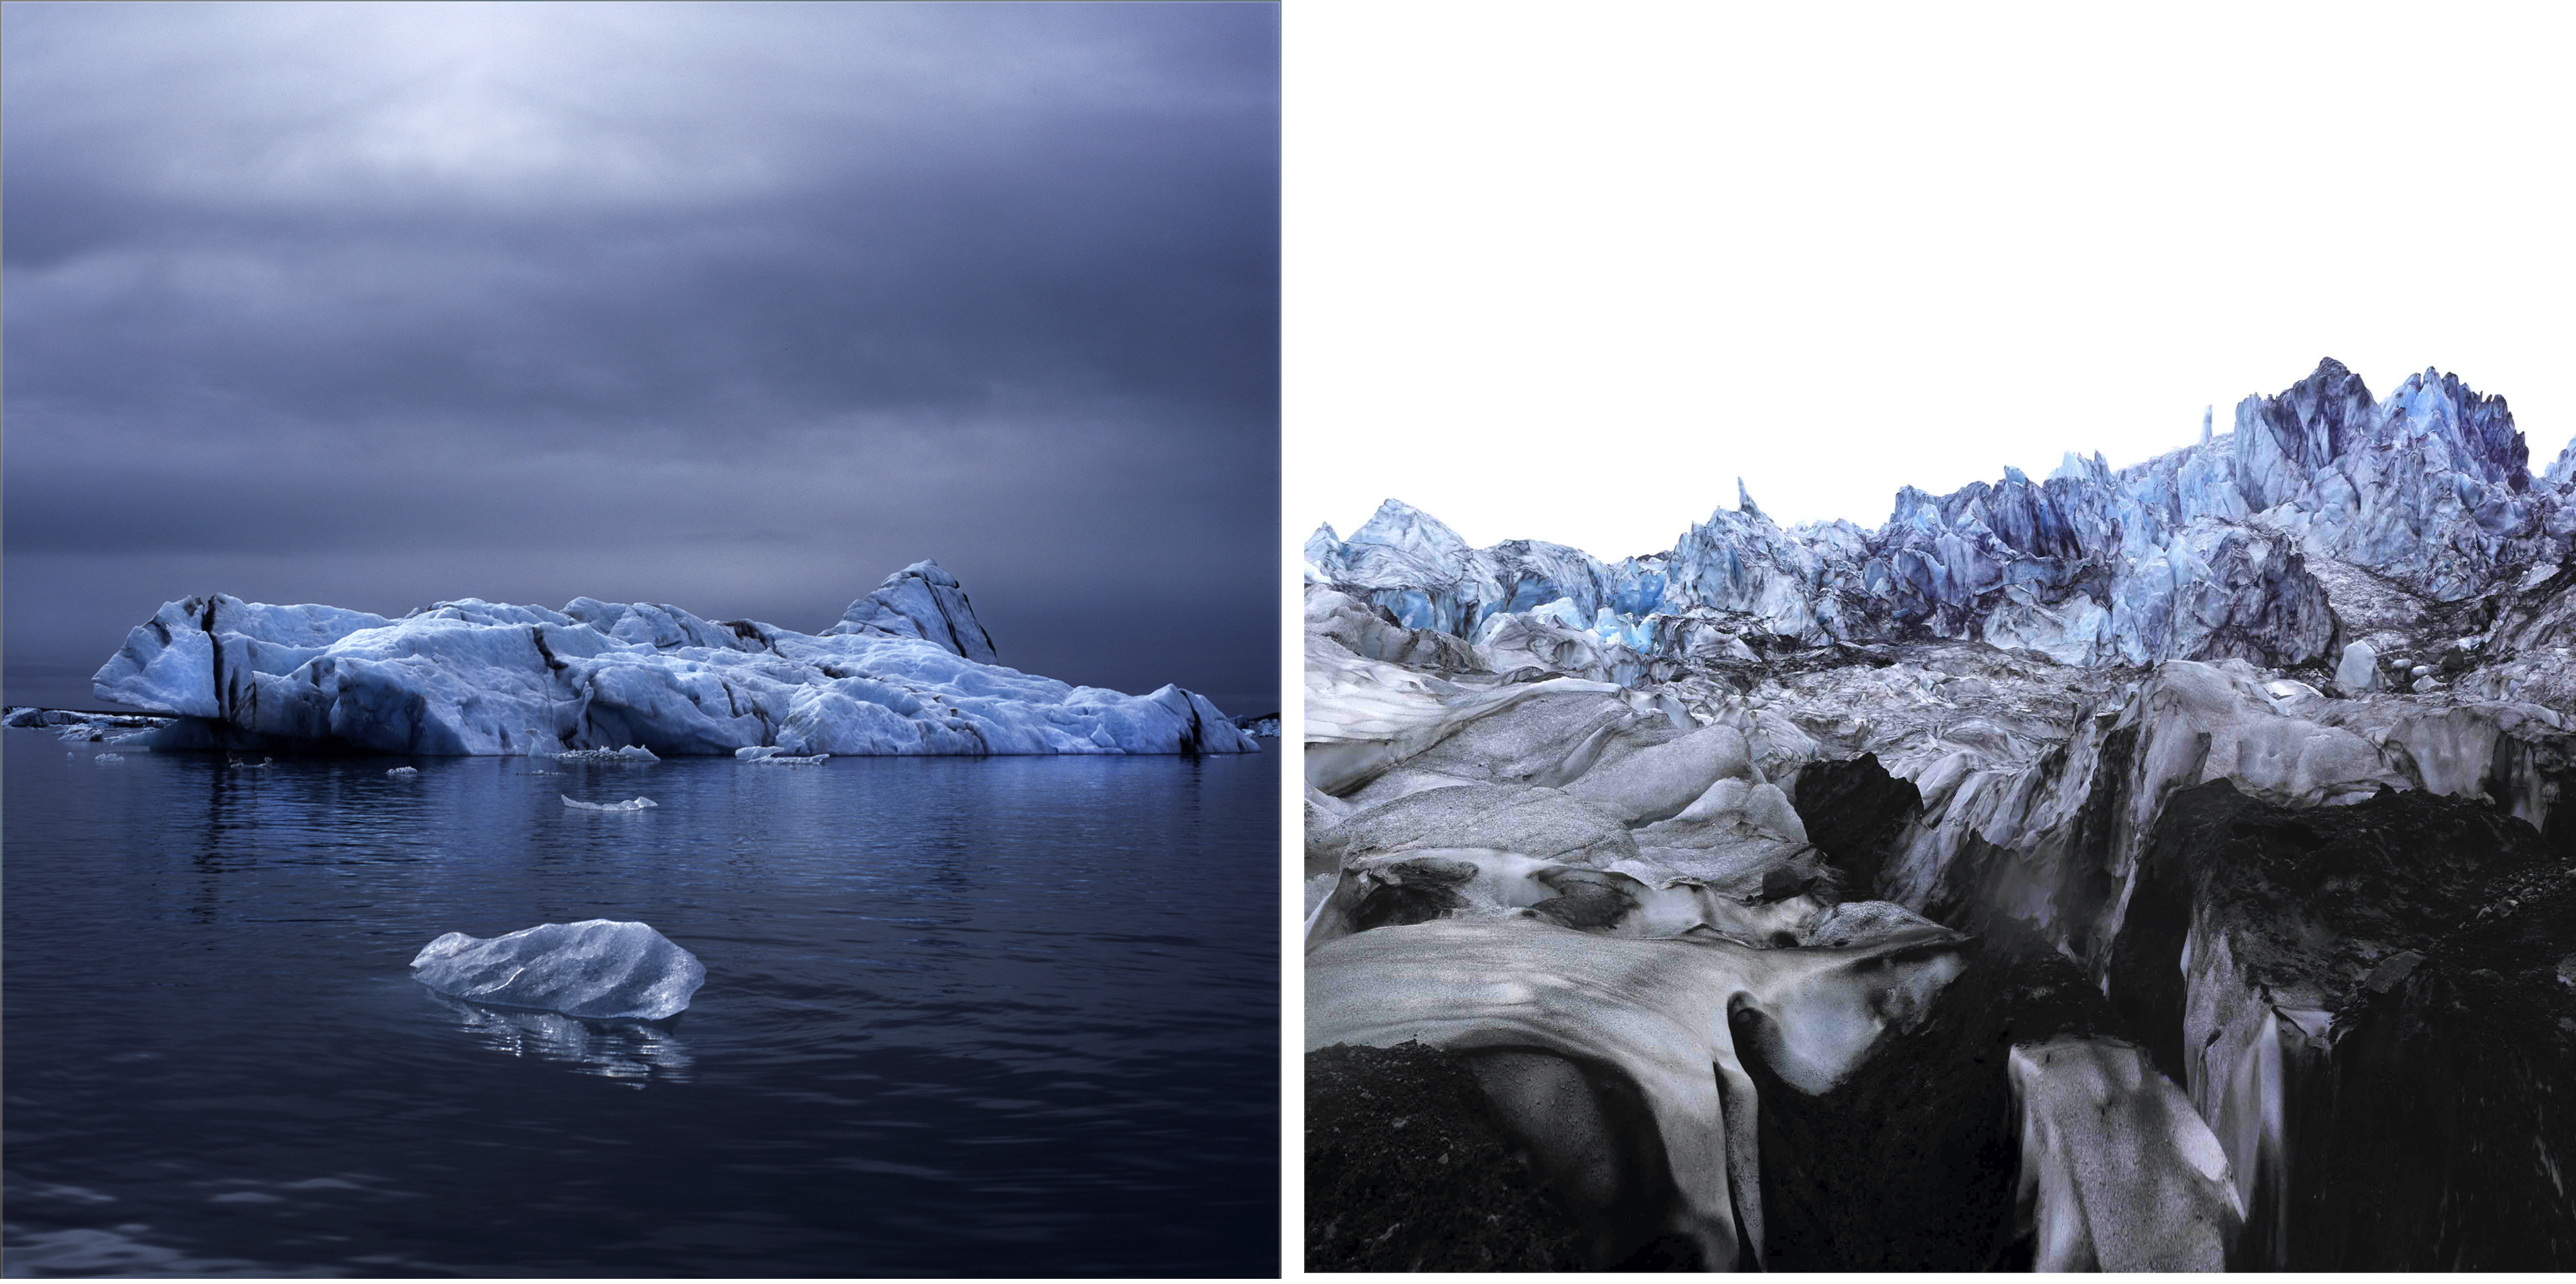 Left Luca Marziale Drifter, Testament Series Right Luca Marziale Glacier II, Testament Series